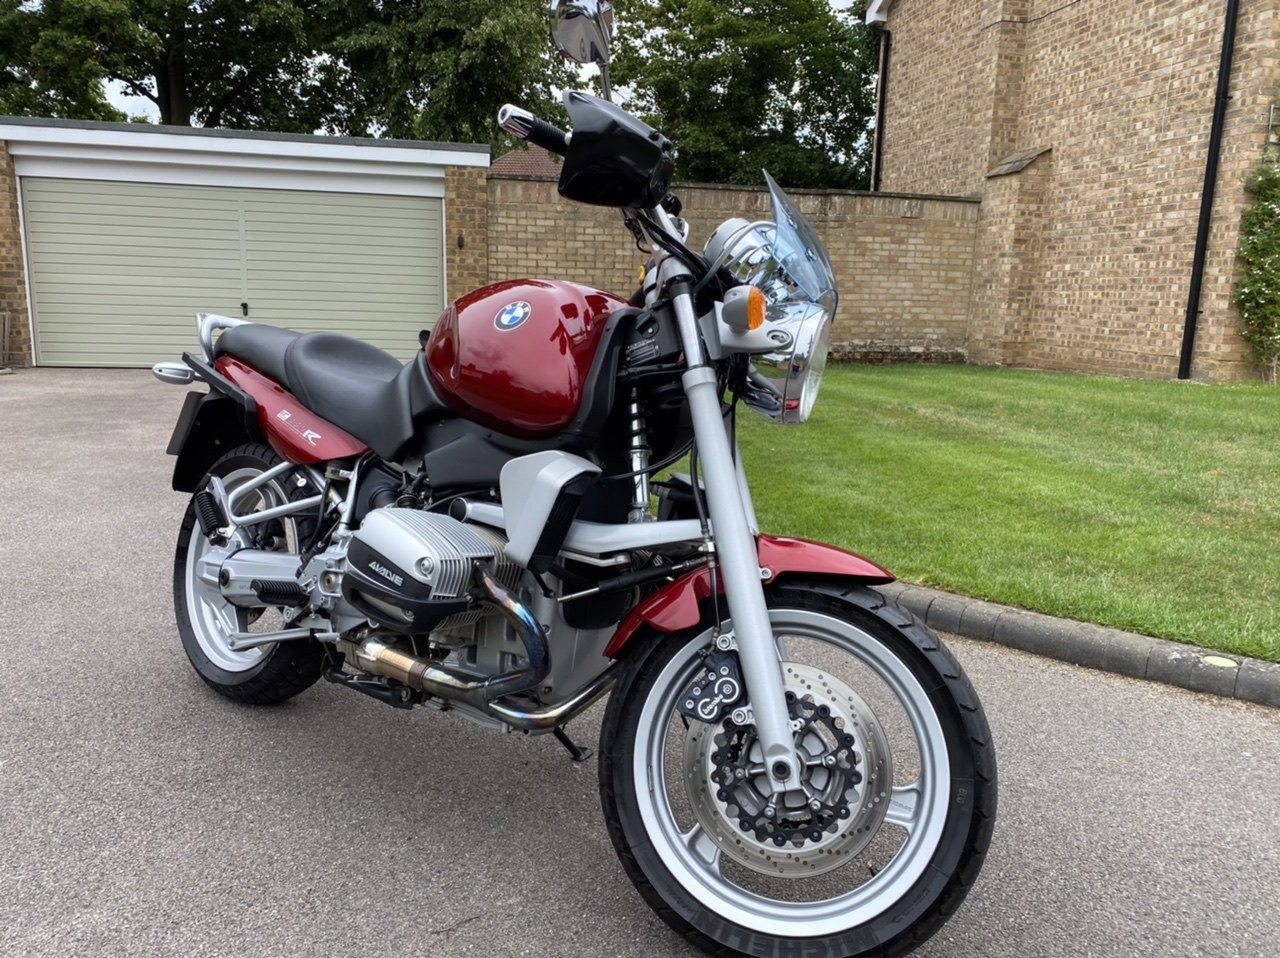 1998 BMW R850R Low mileage, Immaculate with luggage SOLD (picture 5 of 6)